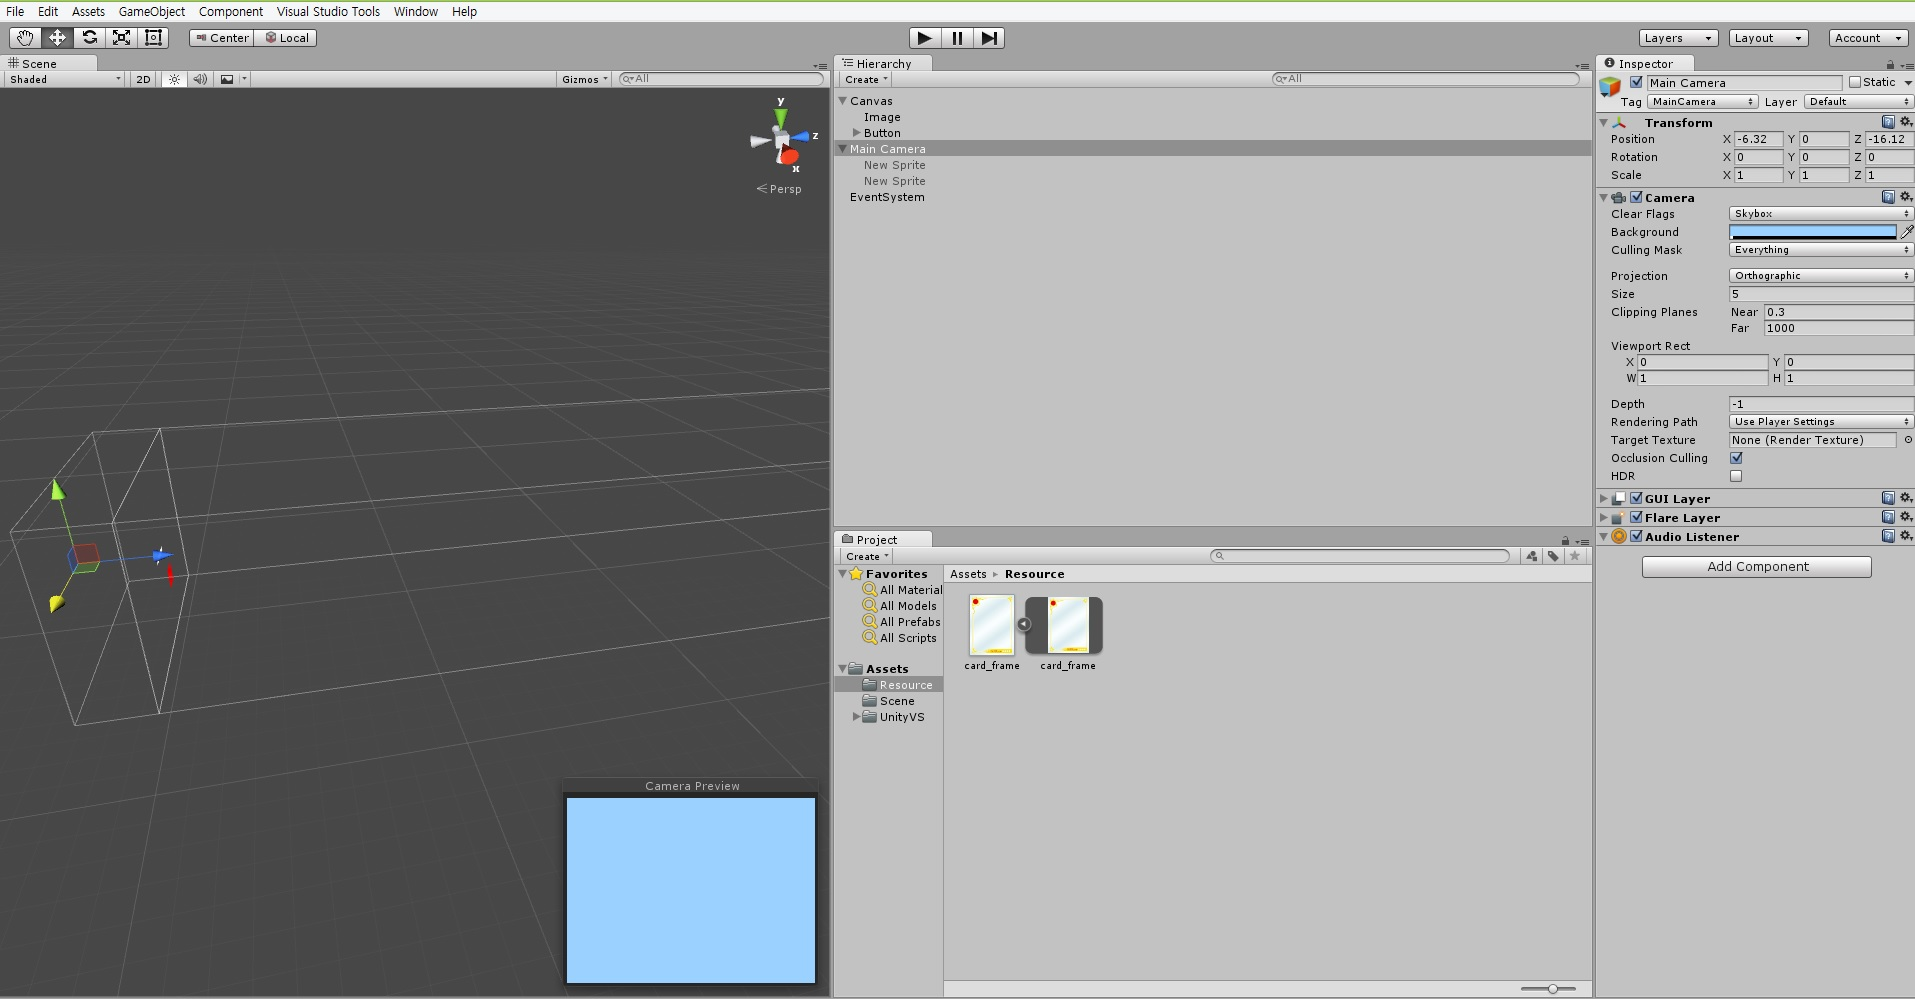 Unity 5 UI Canvas contents are not shown in Camera Preview